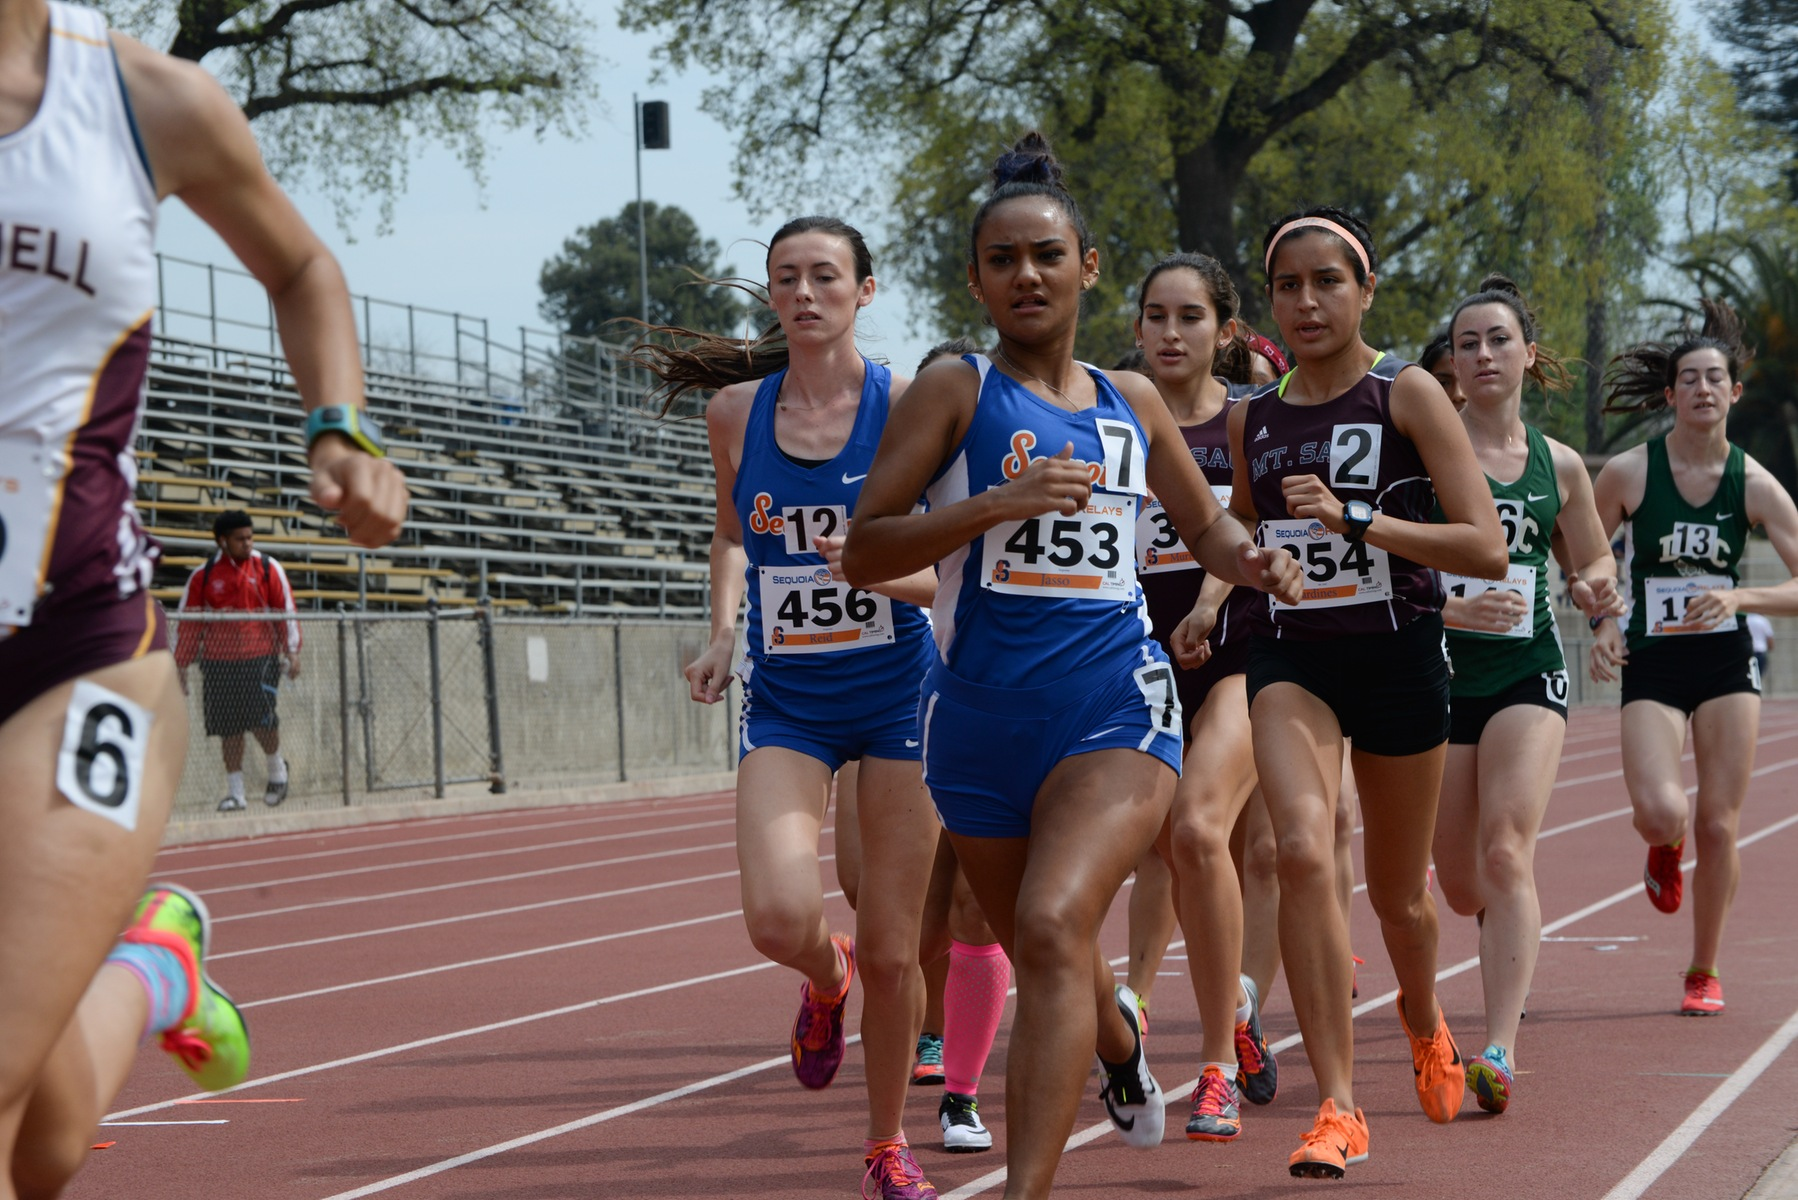 Giants compete in Bakersfield College meet